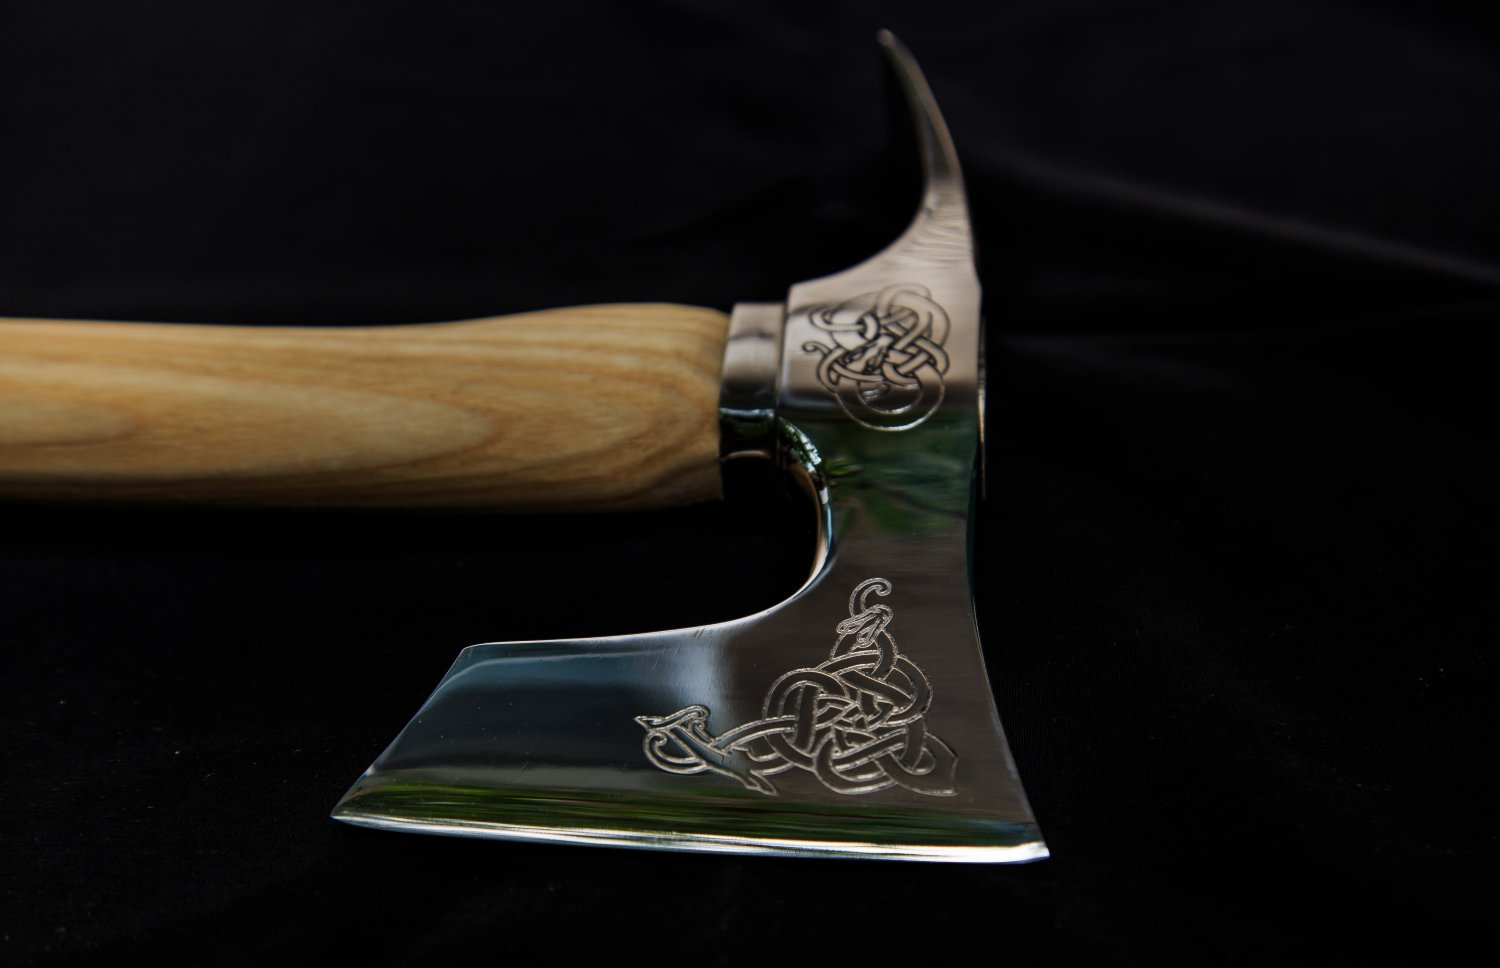 viking adze. stainless steel engraved bearded axe with adze blade polished viking style r